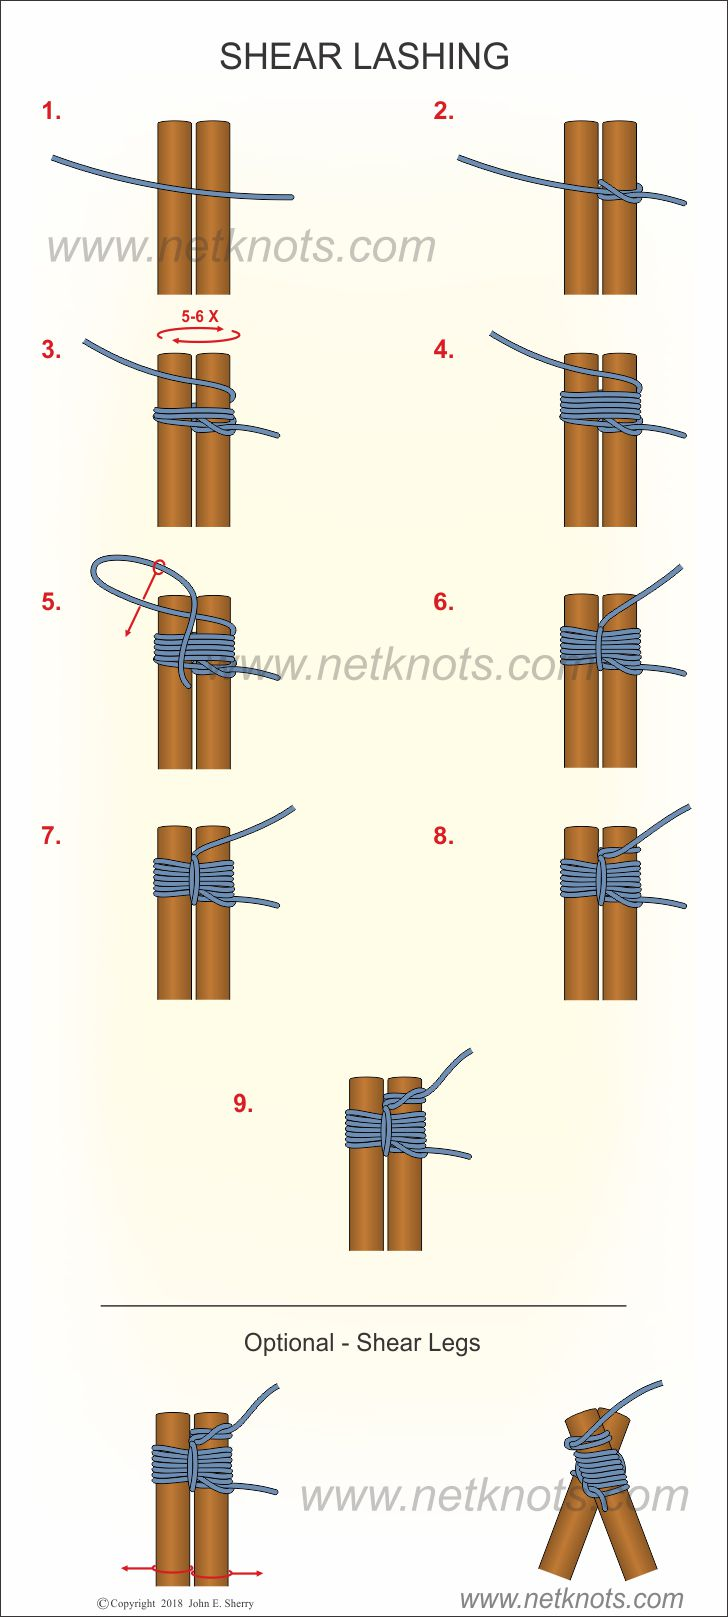 shear lashing tying instructions